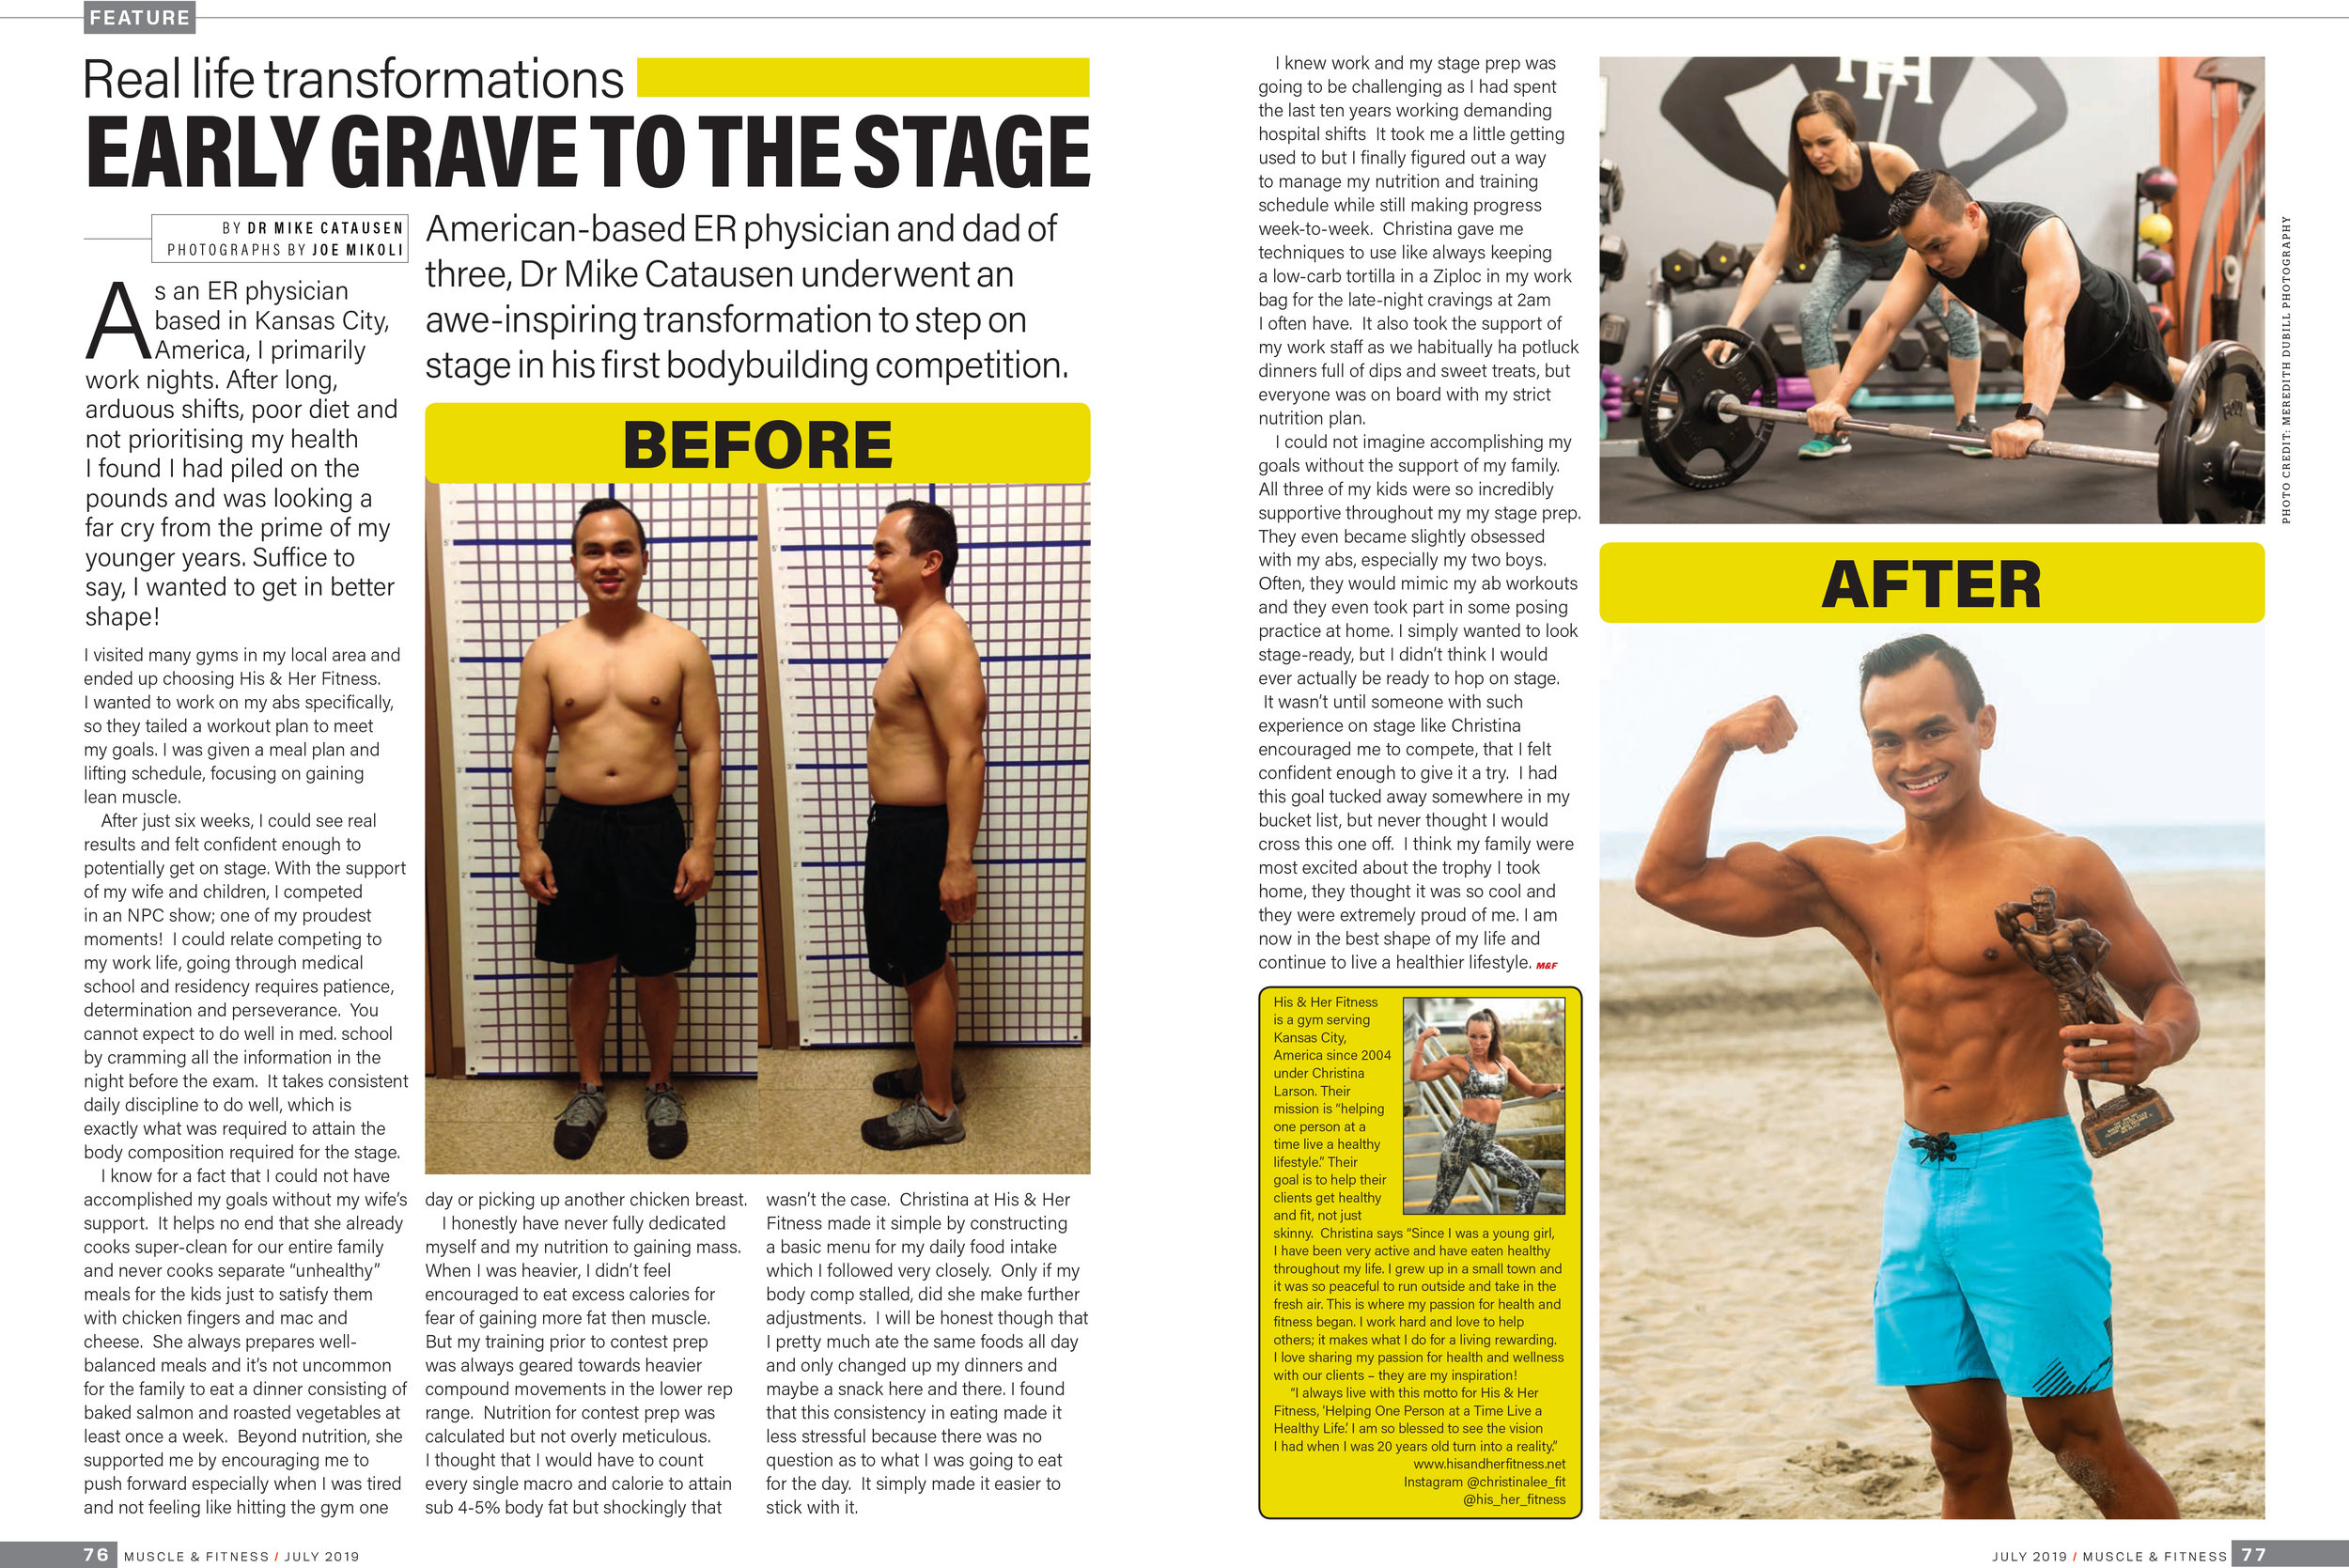 Tearsheet from Muscle & Fitness UK featuring Christina Larson and client Michael in July 2019 issue.